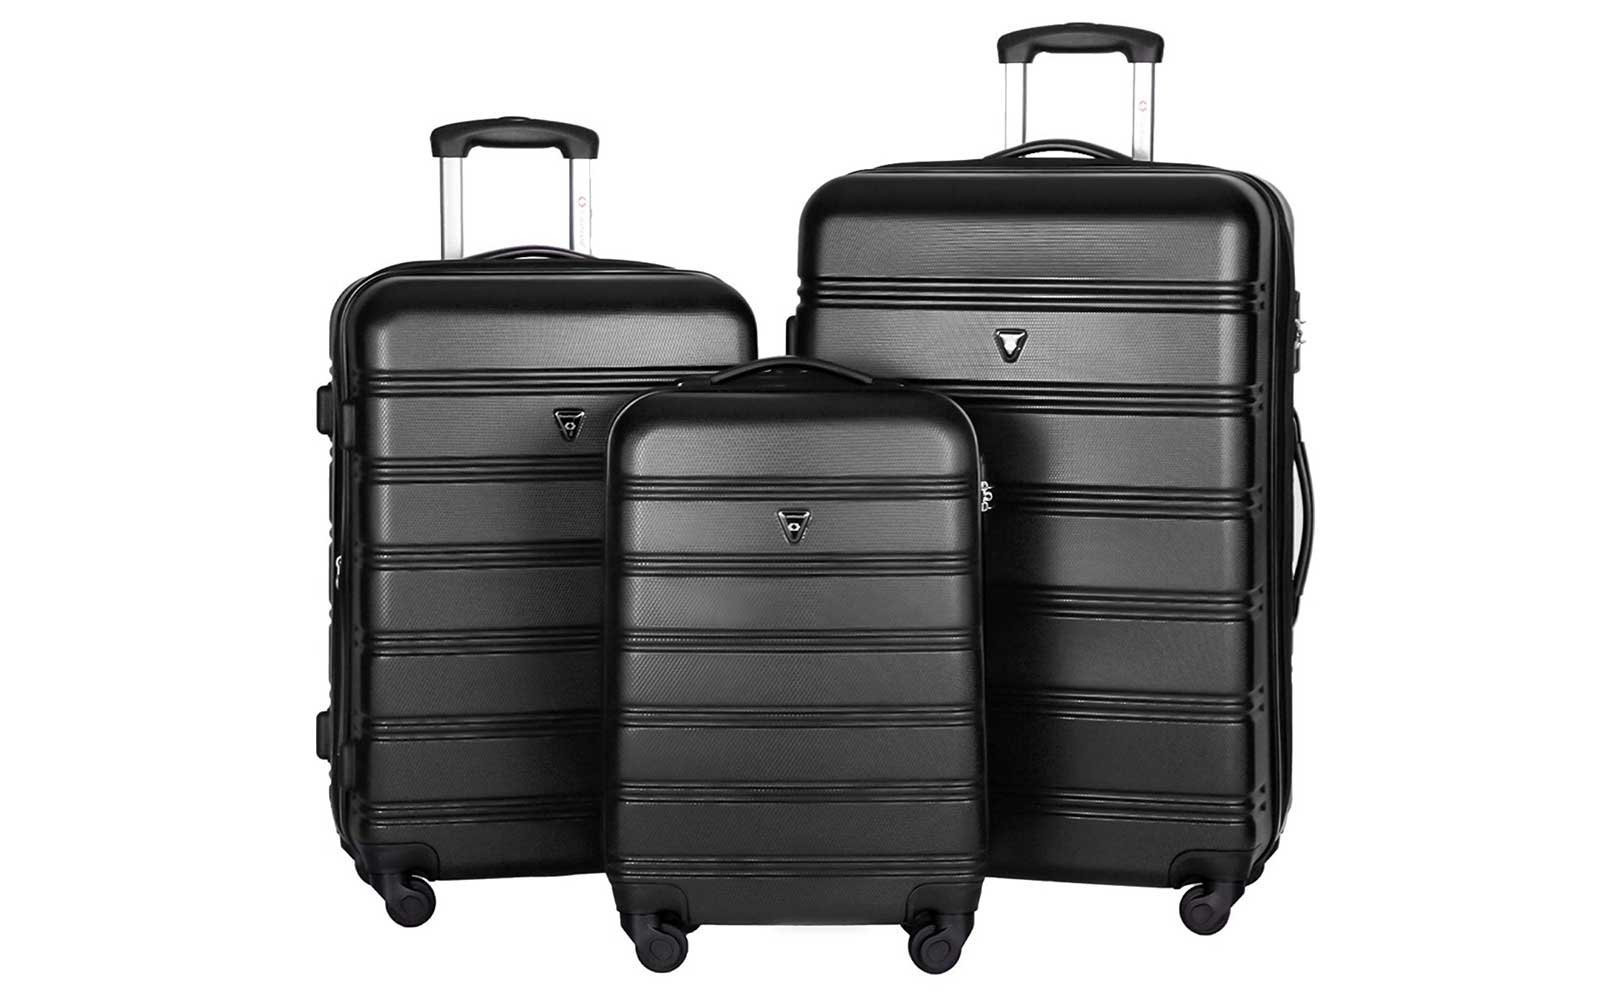 Mera luggage set